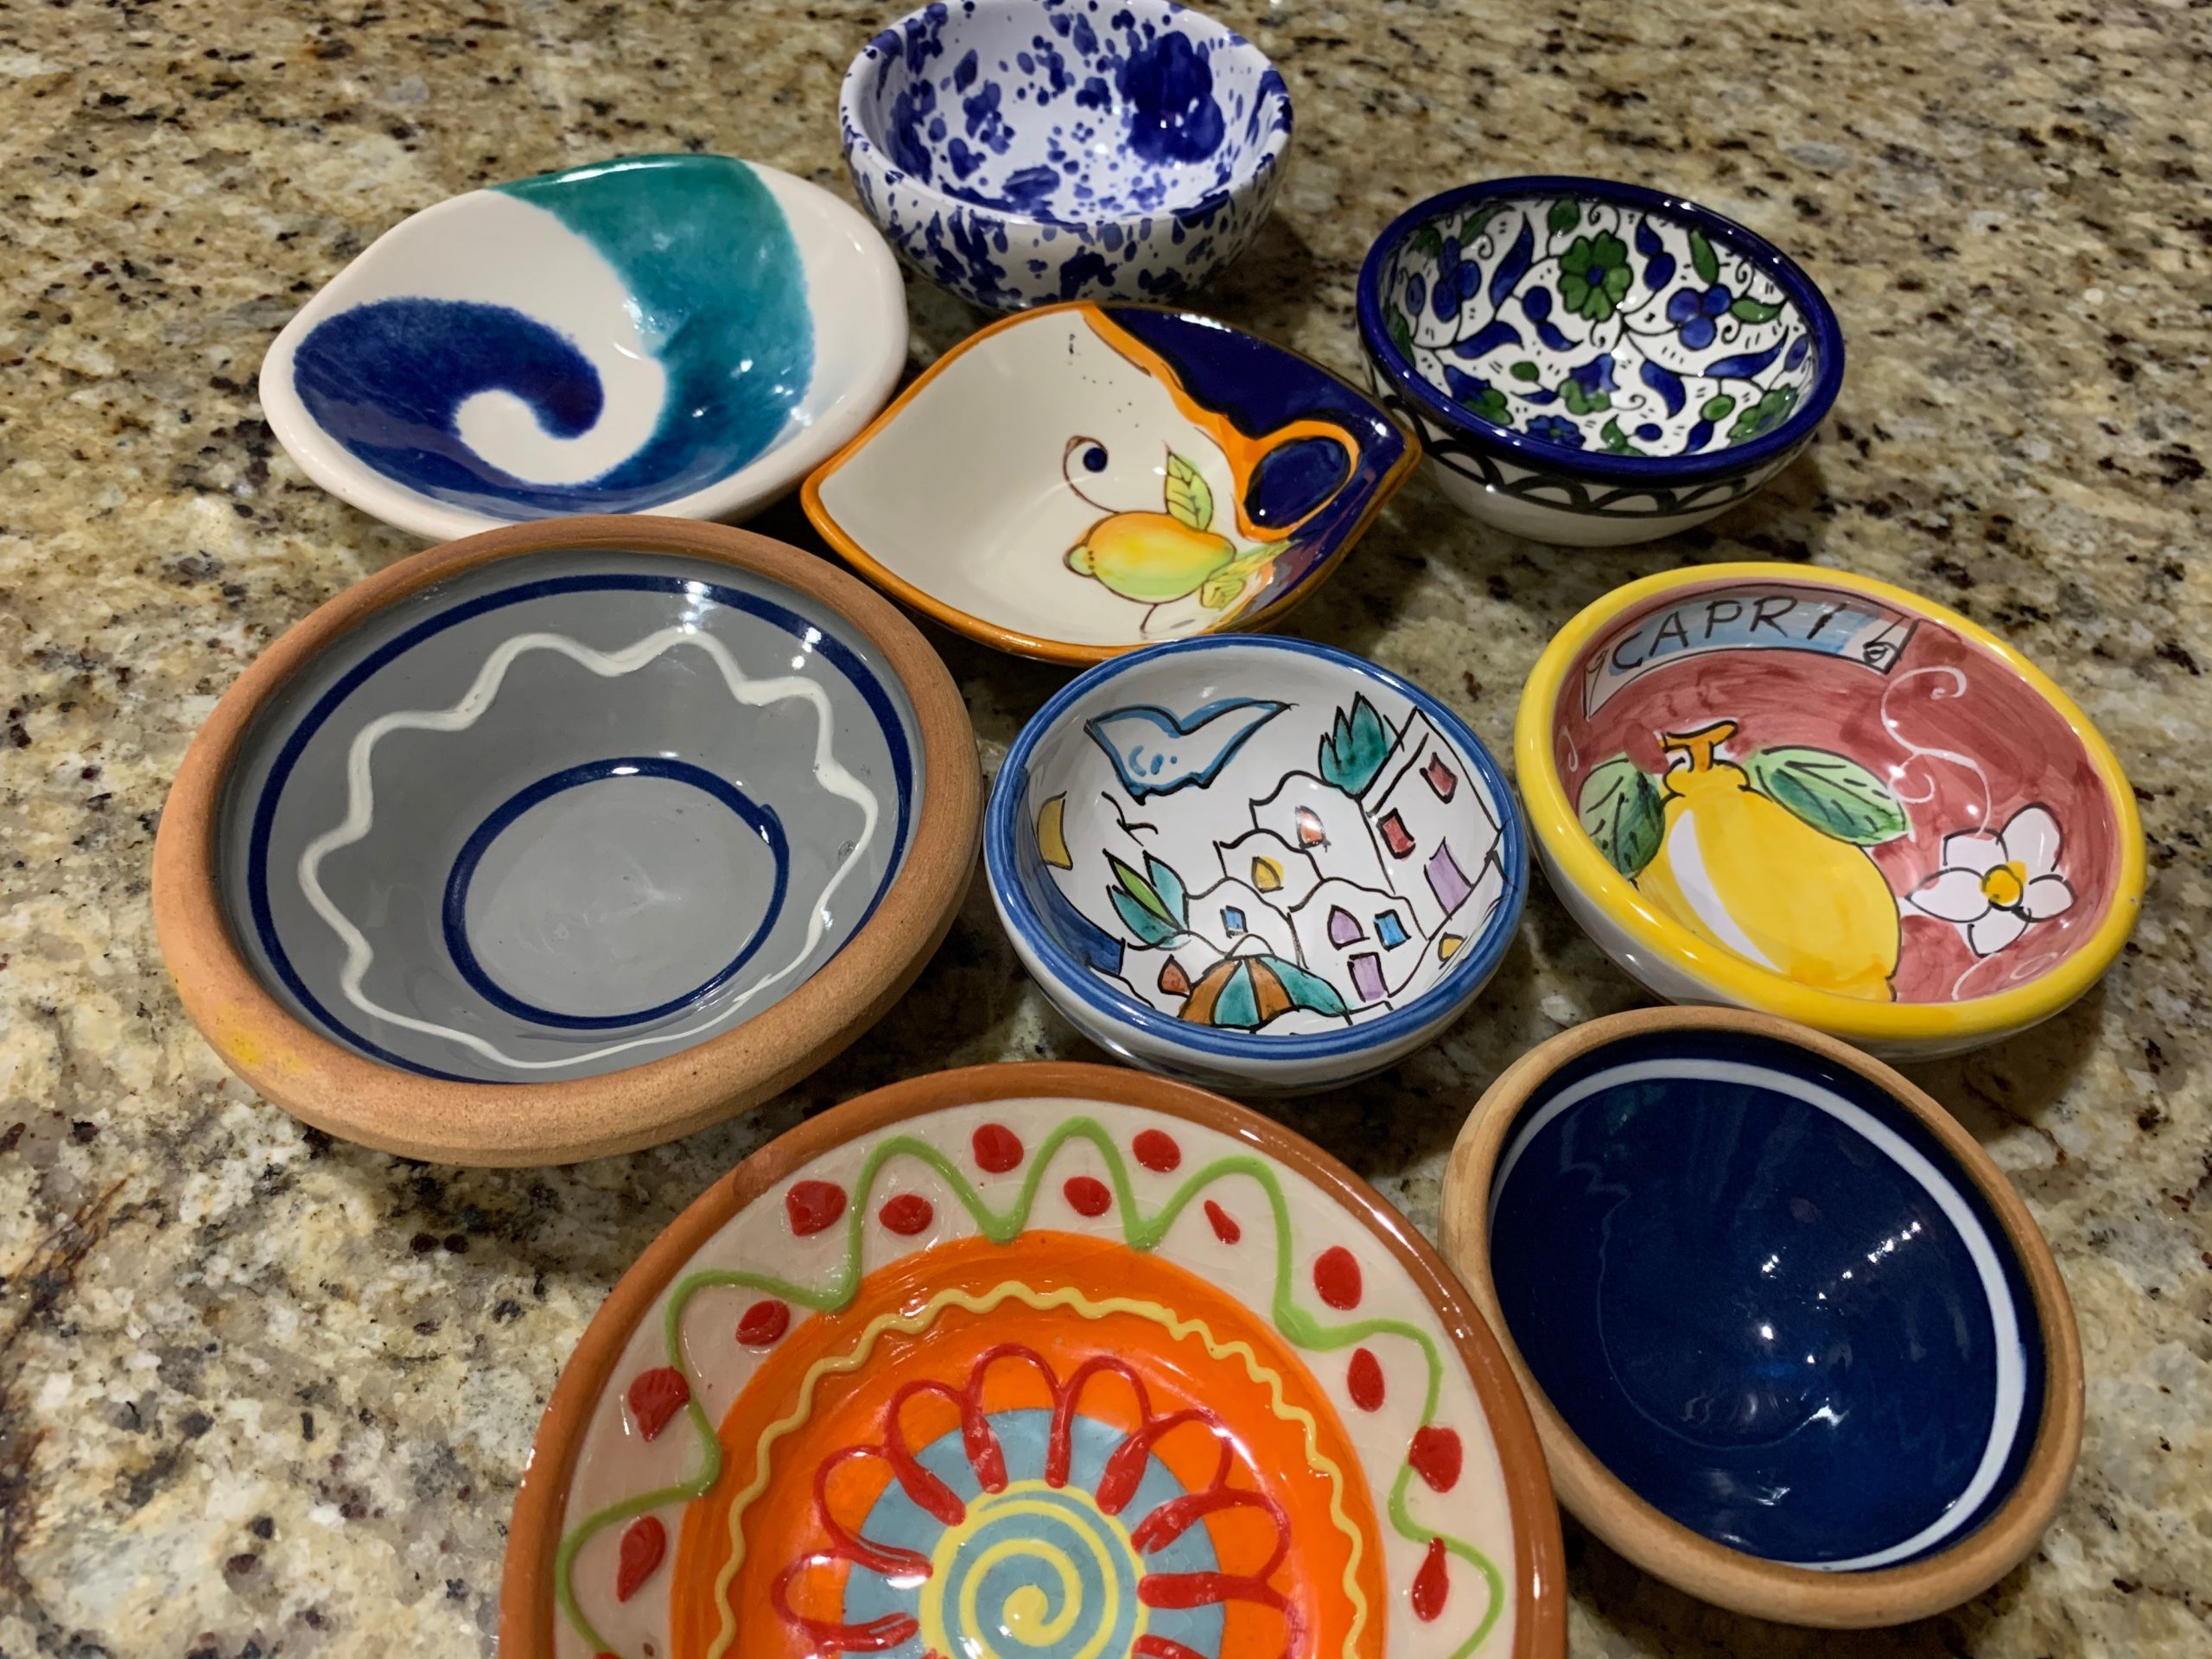 ceramic bowls from different countries